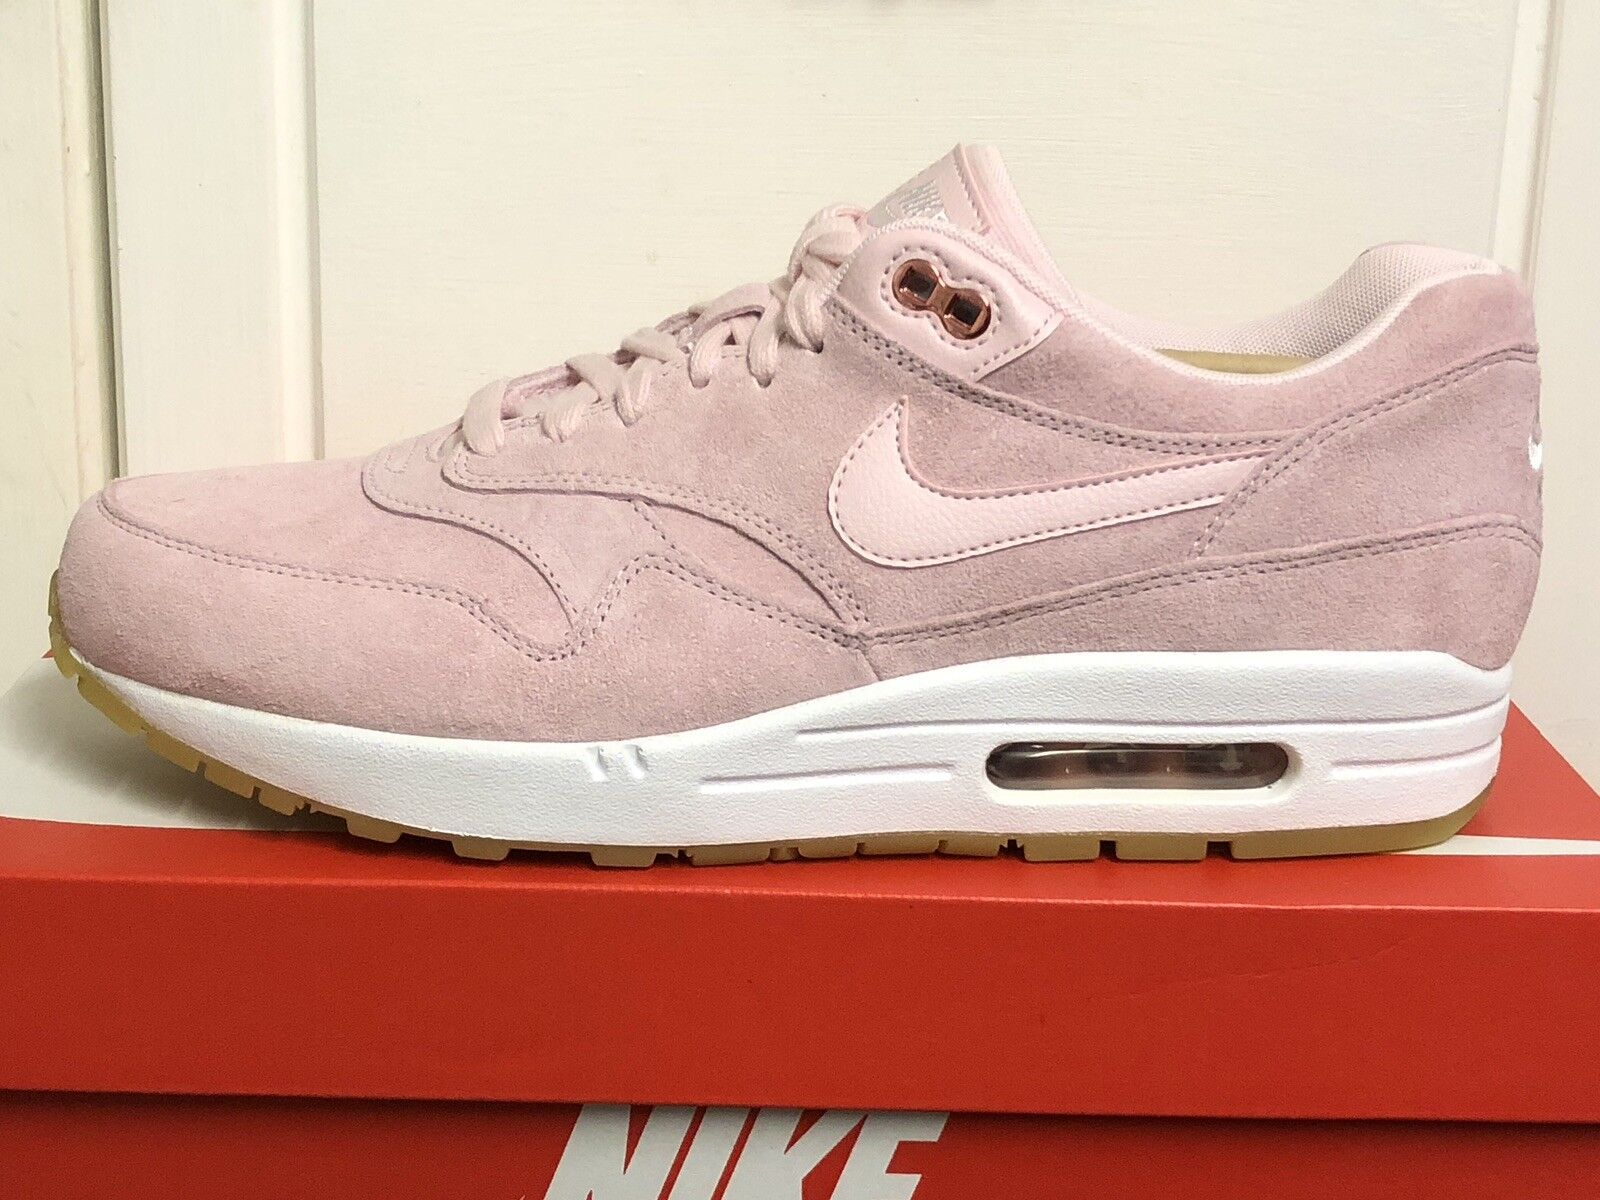 nike air max 1 sd wo  formateurs chaussures chaussures chaussures formateurs 12 ac0ae9